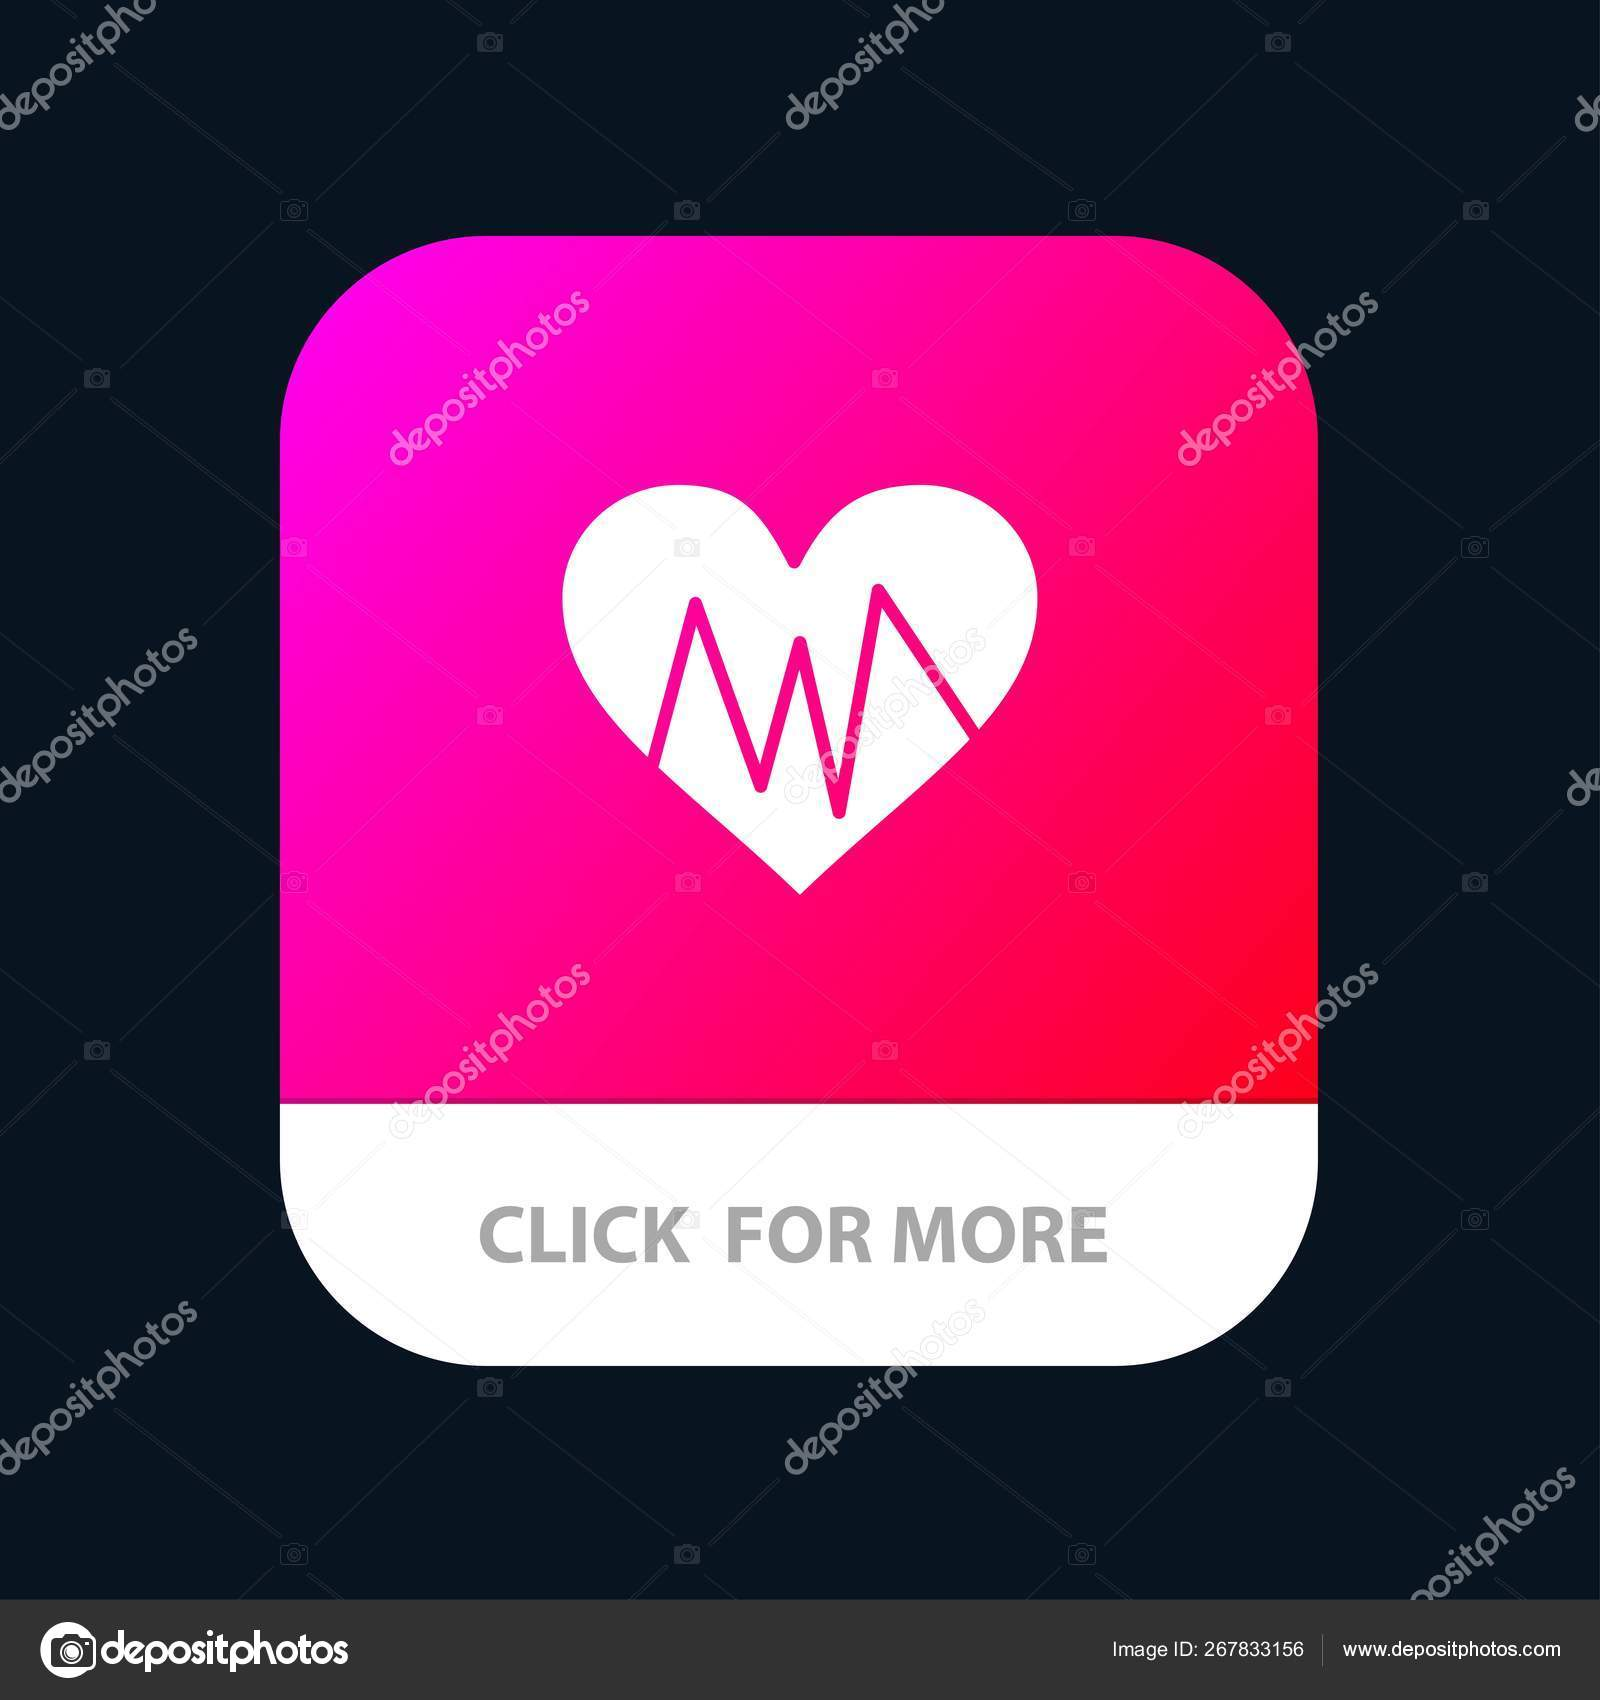 Medical, Heart, Heartbeat, Pulse Mobile App Button  Android and